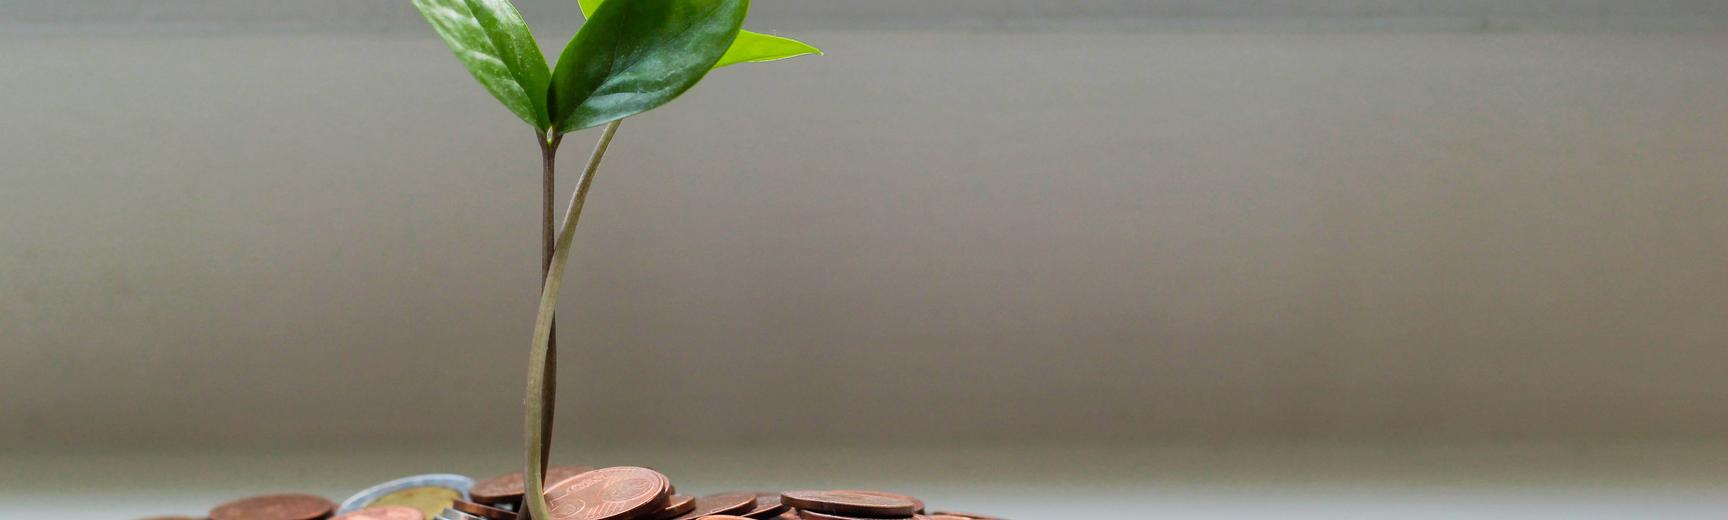 Pile of money coins with a green seedling plant growing from it.